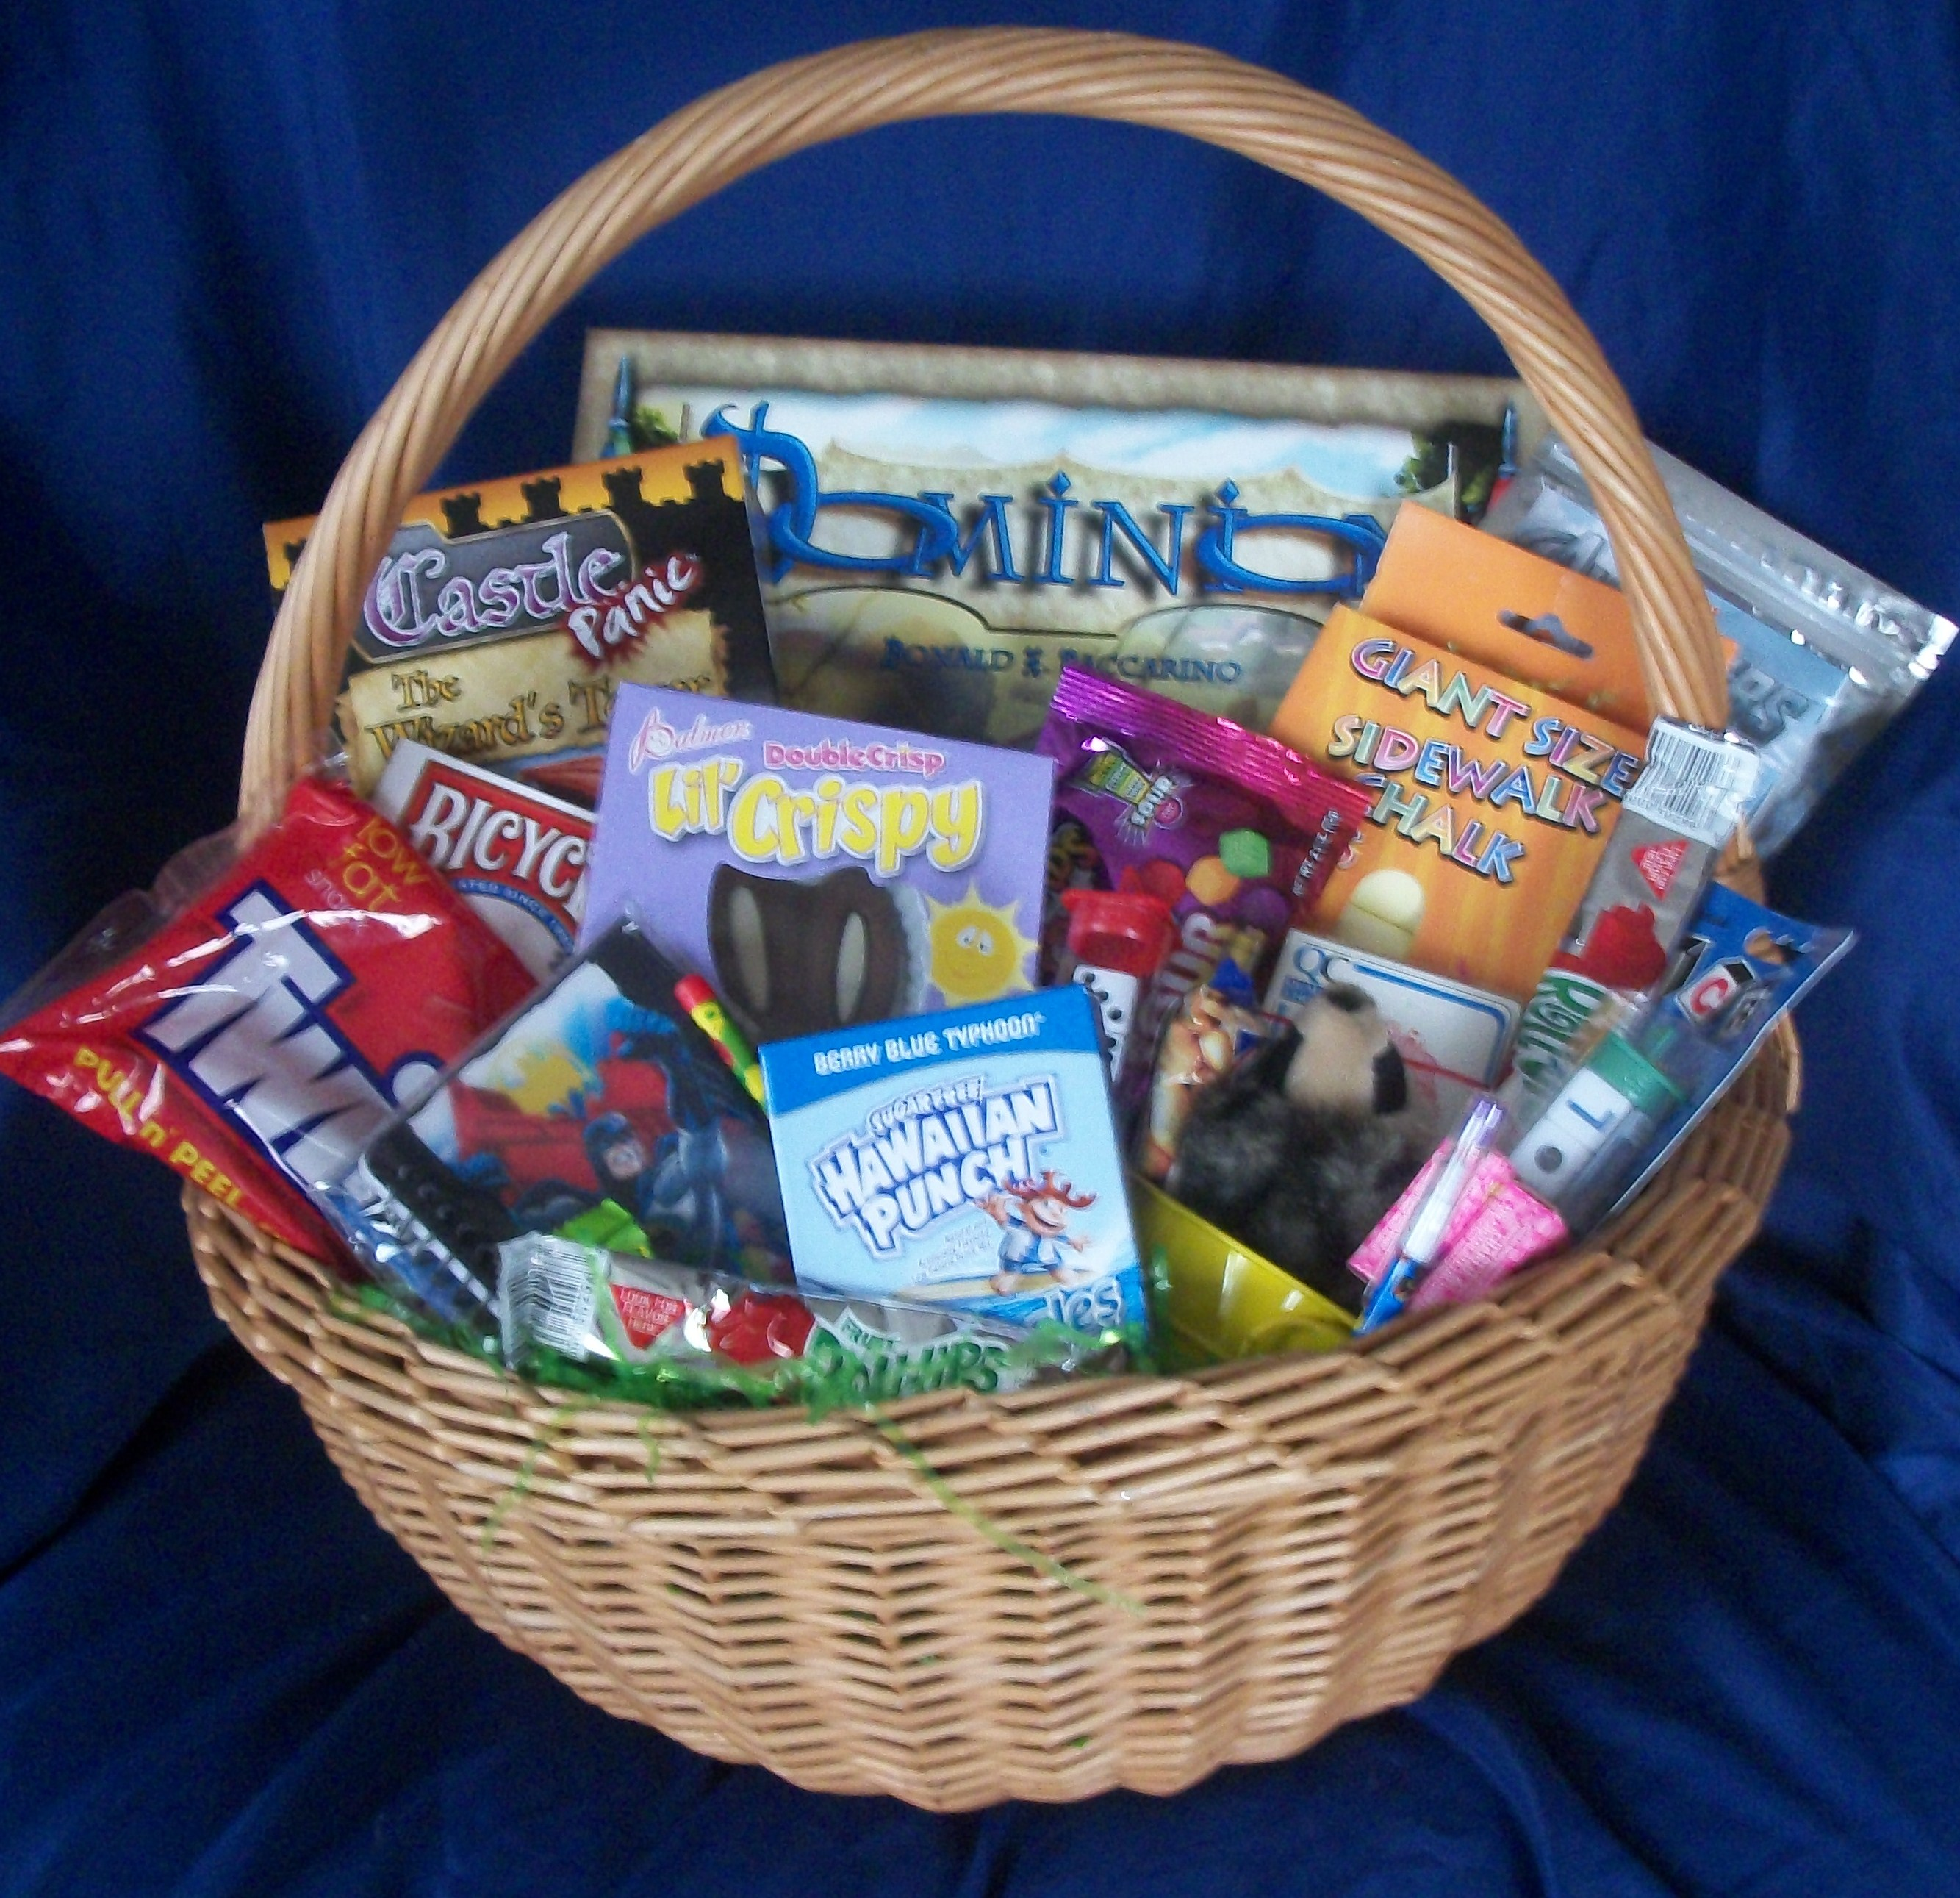 Game gift baskets all about fun and games fun and games gift basket negle Images